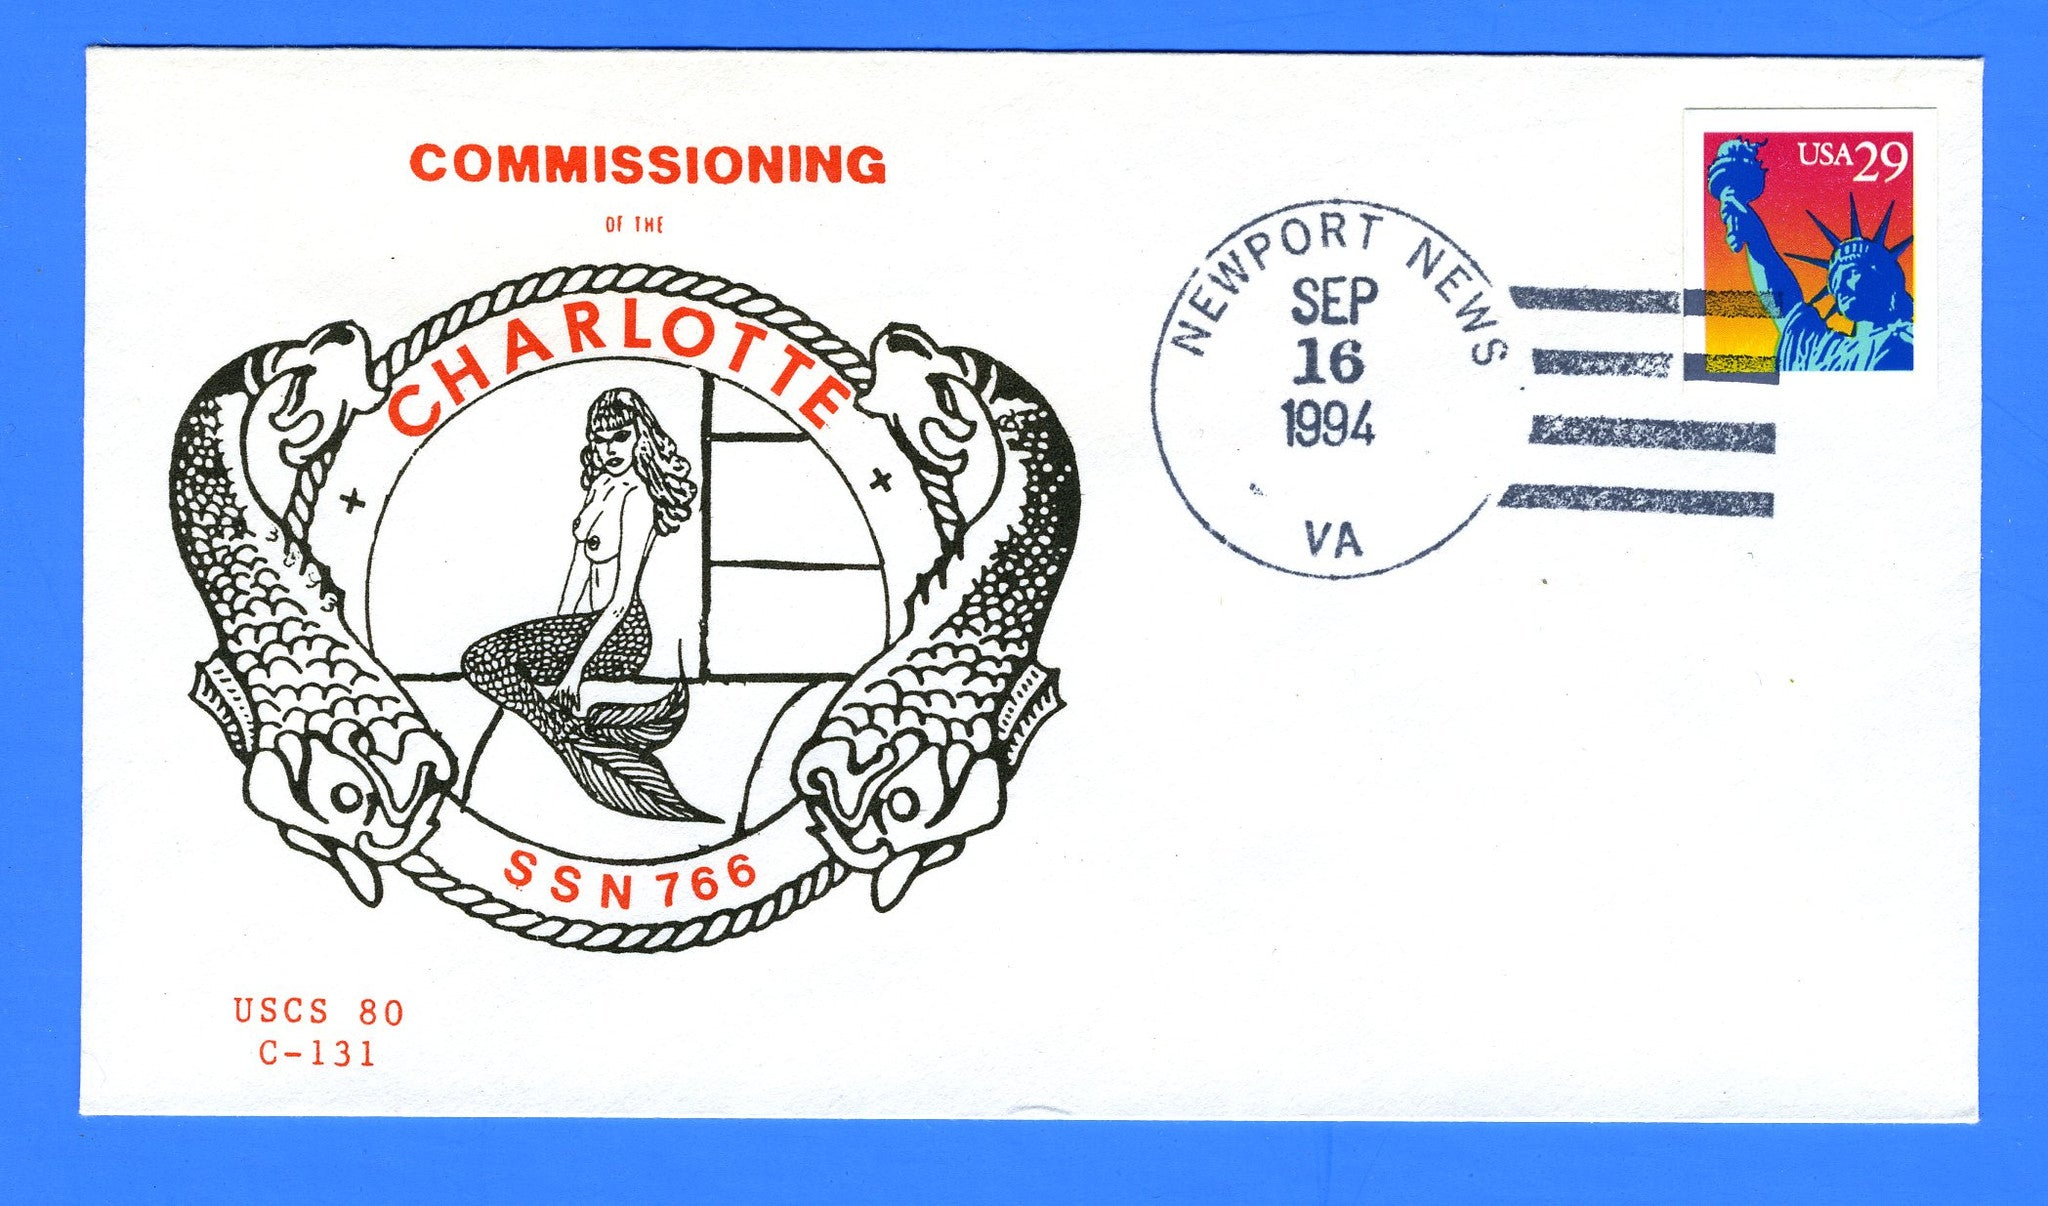 USS Charlotte SSN-766 Commissioning September 16, 1994